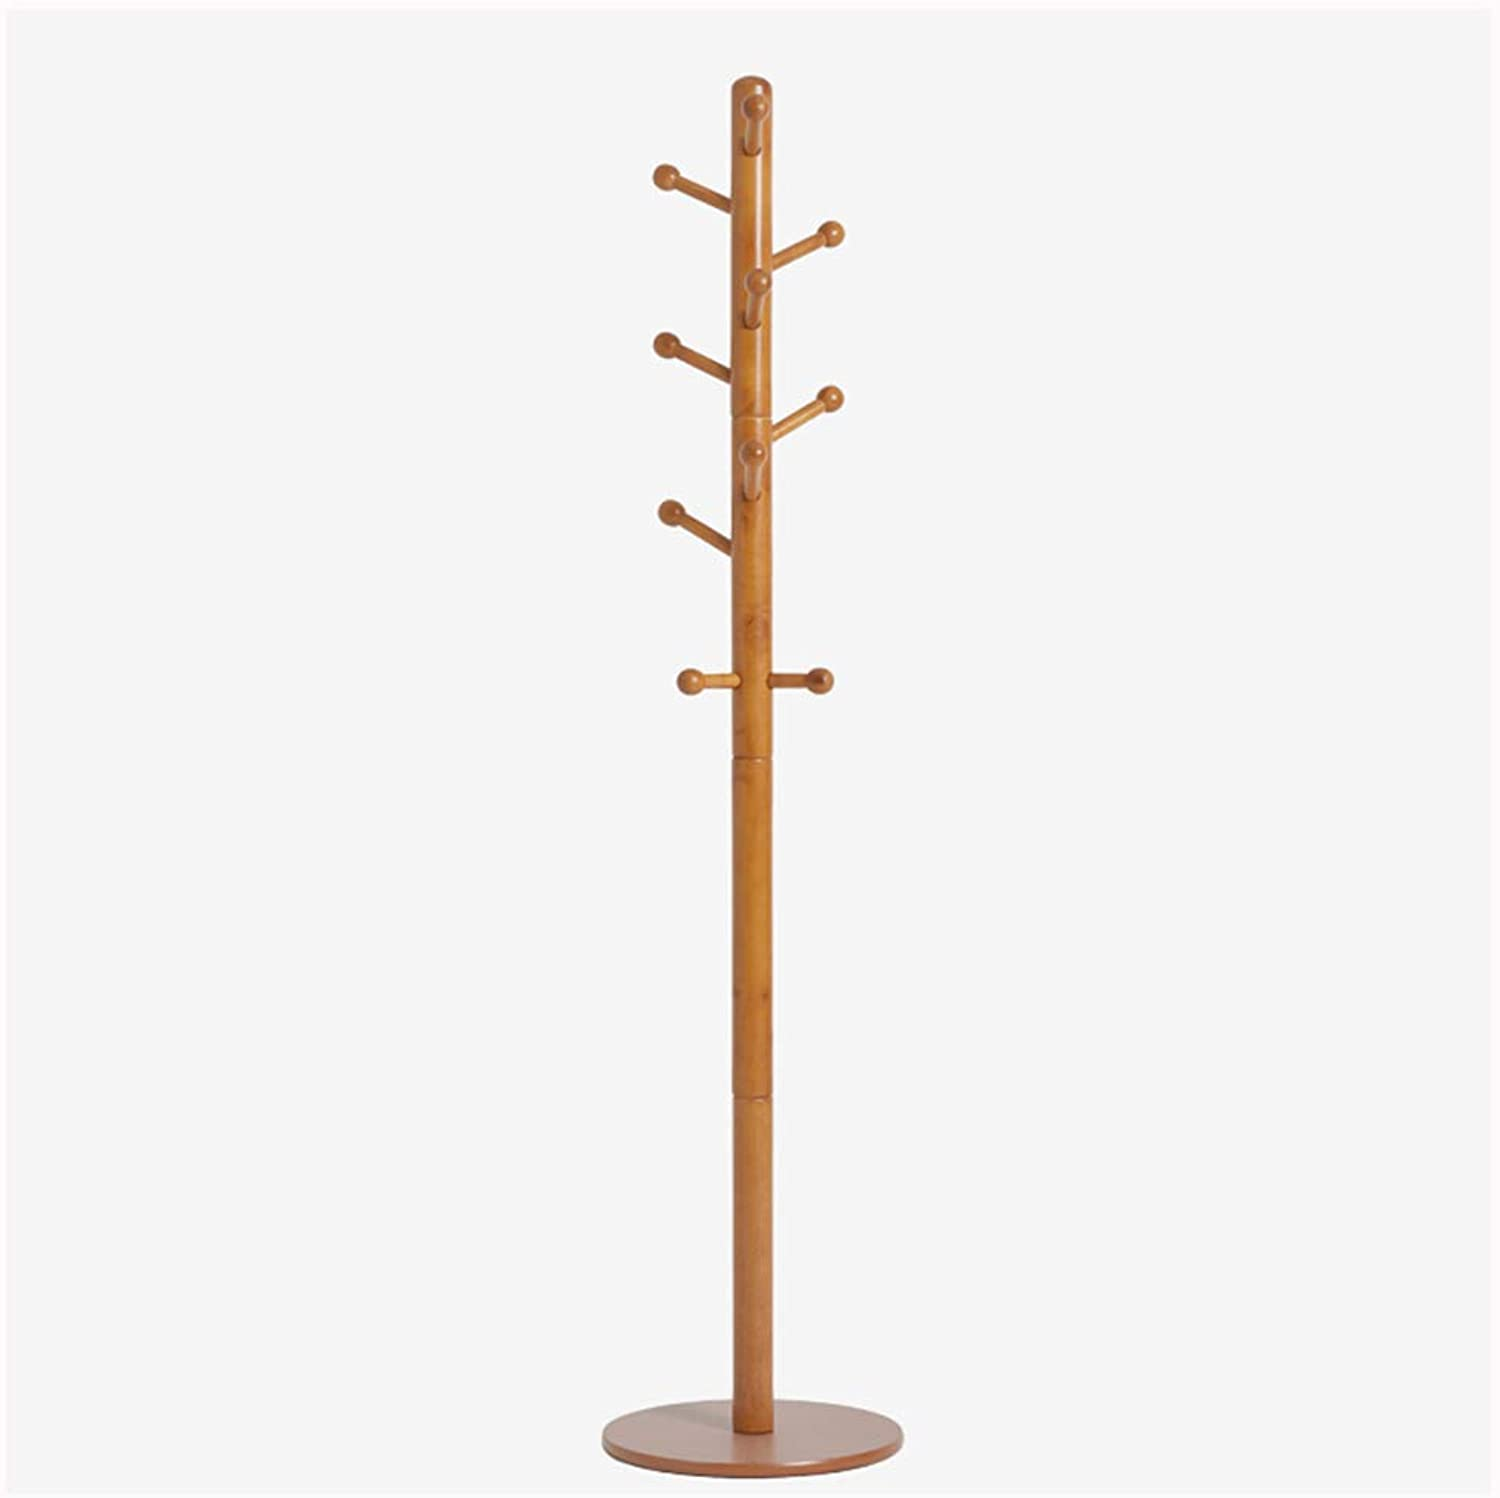 Qi_Hallway Furniture Coat Stand Clothes Rack Hat Coat Rack and Coat Stand with Umbrella Holder Hooks for Umbrella Hat Hanging All Kinds of Clothes, Coats Standing Coat Racks